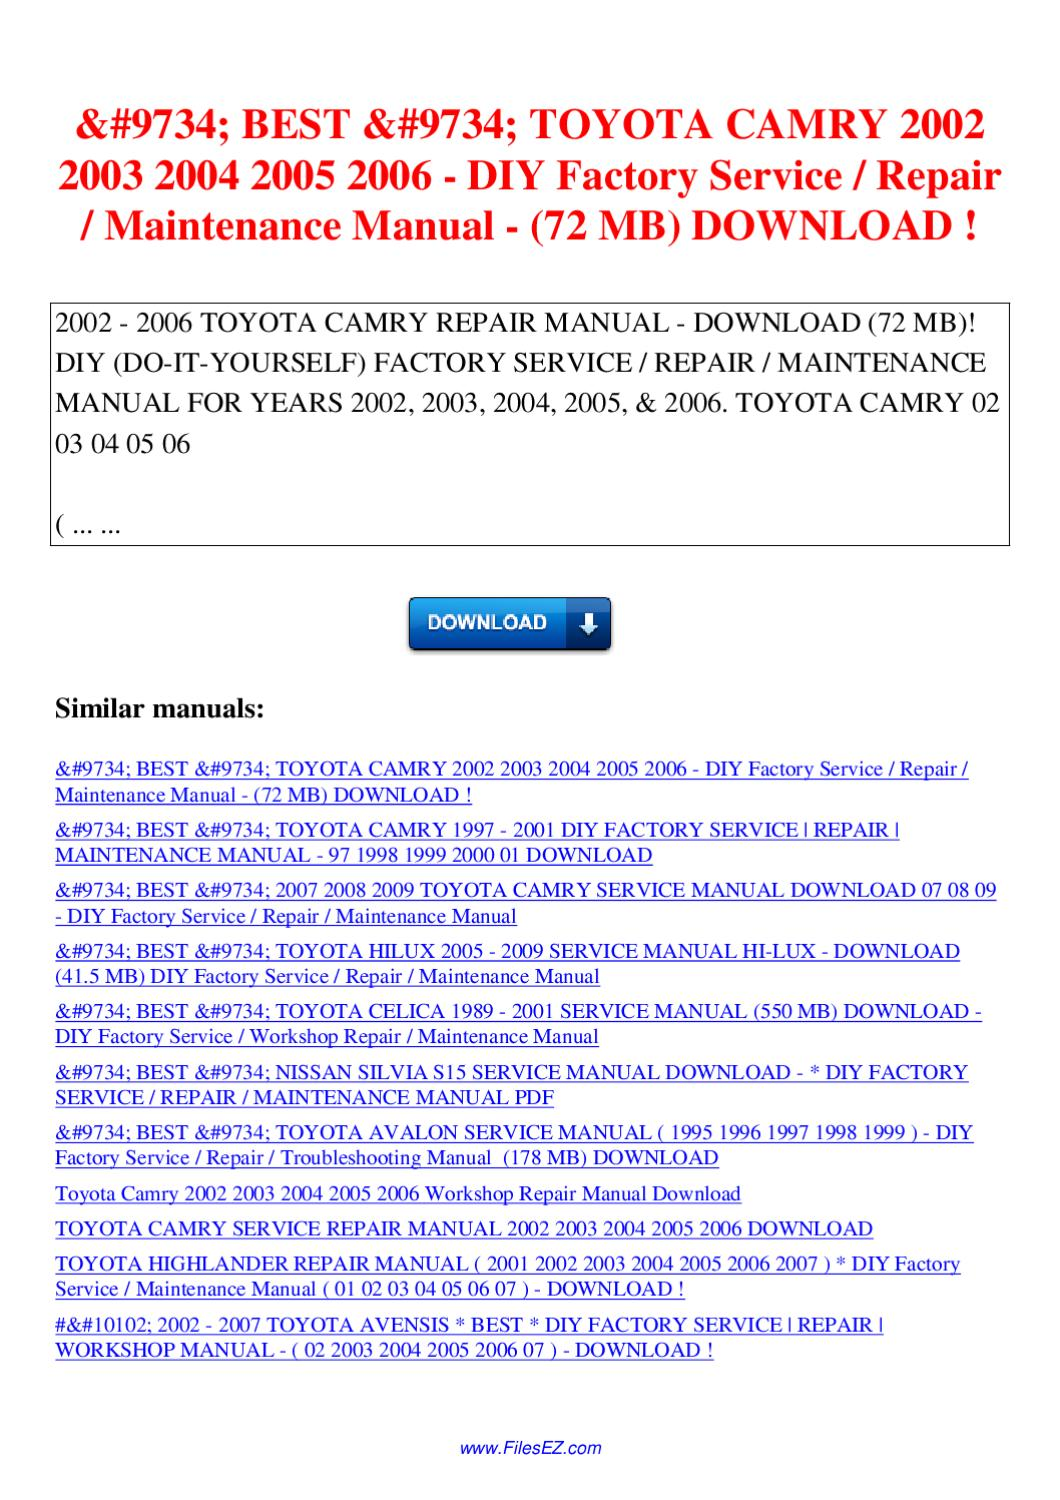 2003 toyota camry service manual download